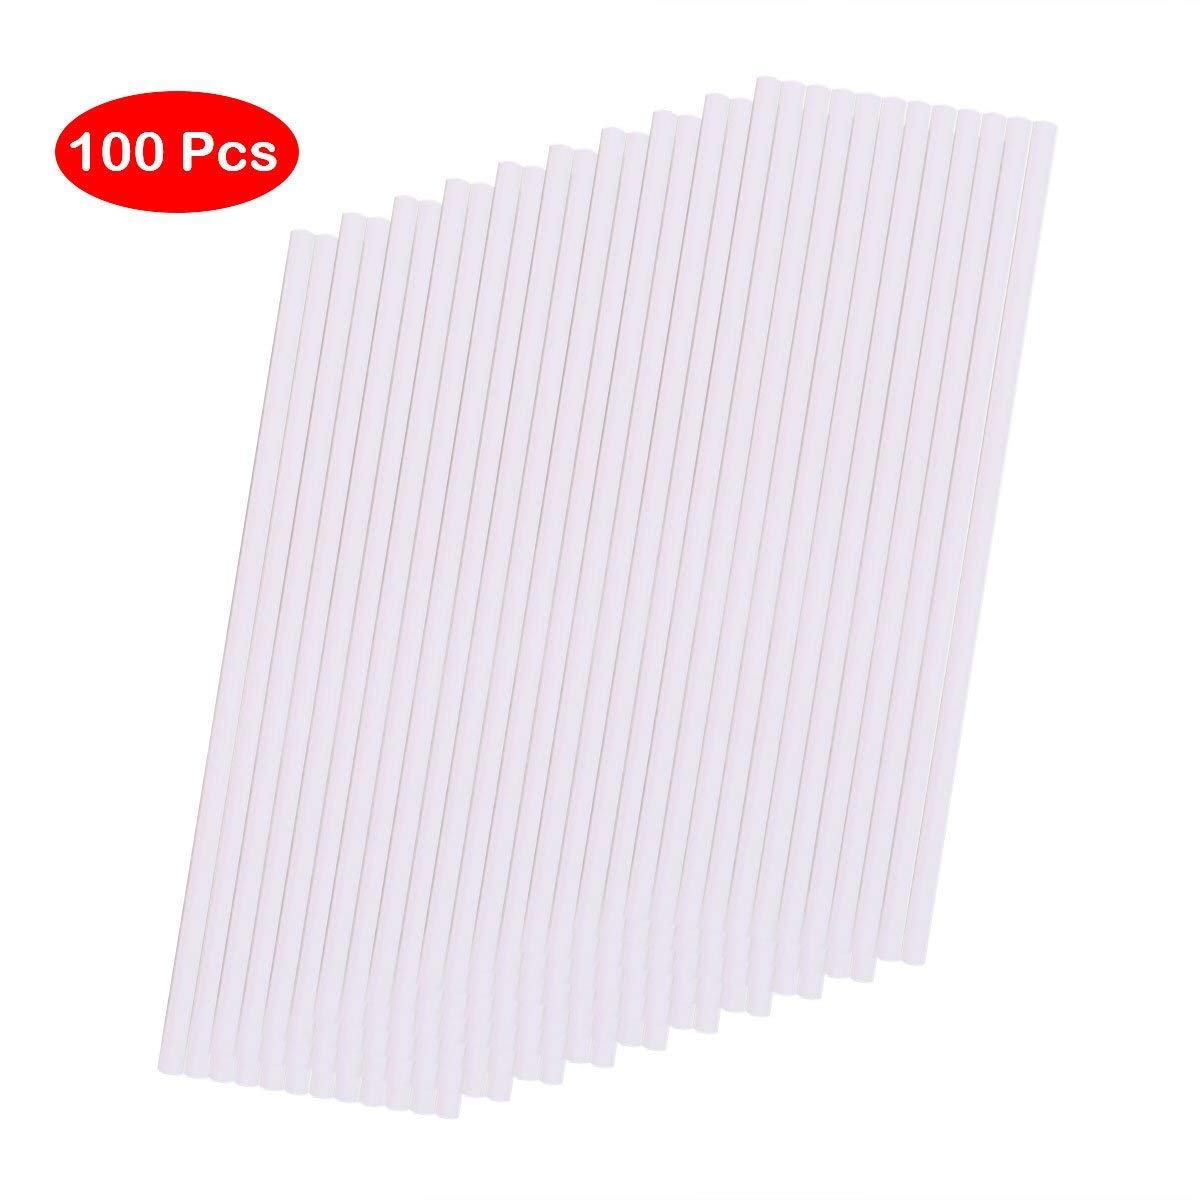 66f8b5eb3a0 Get Quotations · 6 Inch Food Grade Paper Sticks for Lollipop Fondant Candy  Chocolate Baking Tool (100pcs)